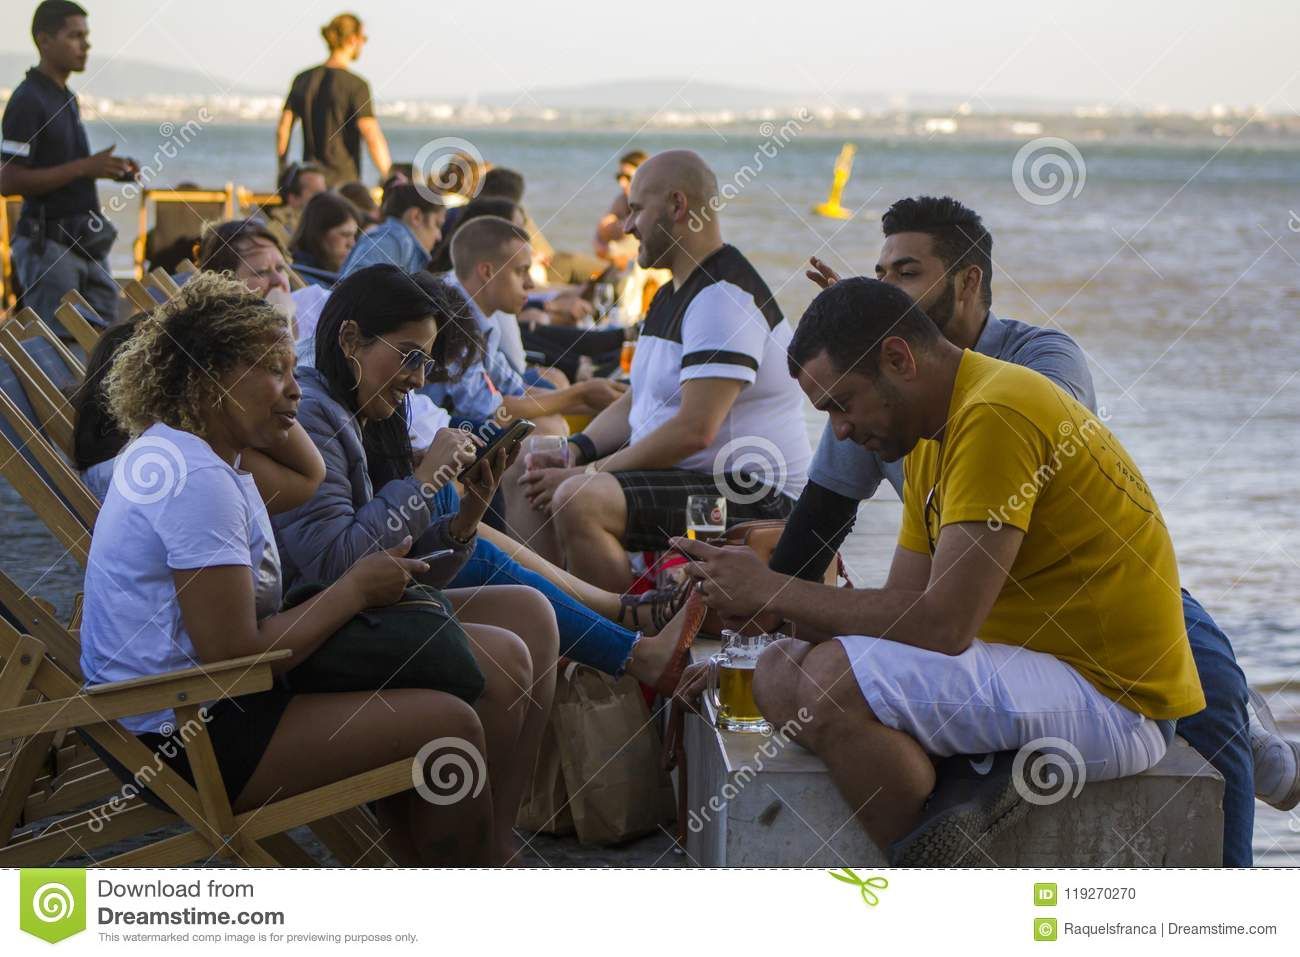 People enjoying a drink near the river